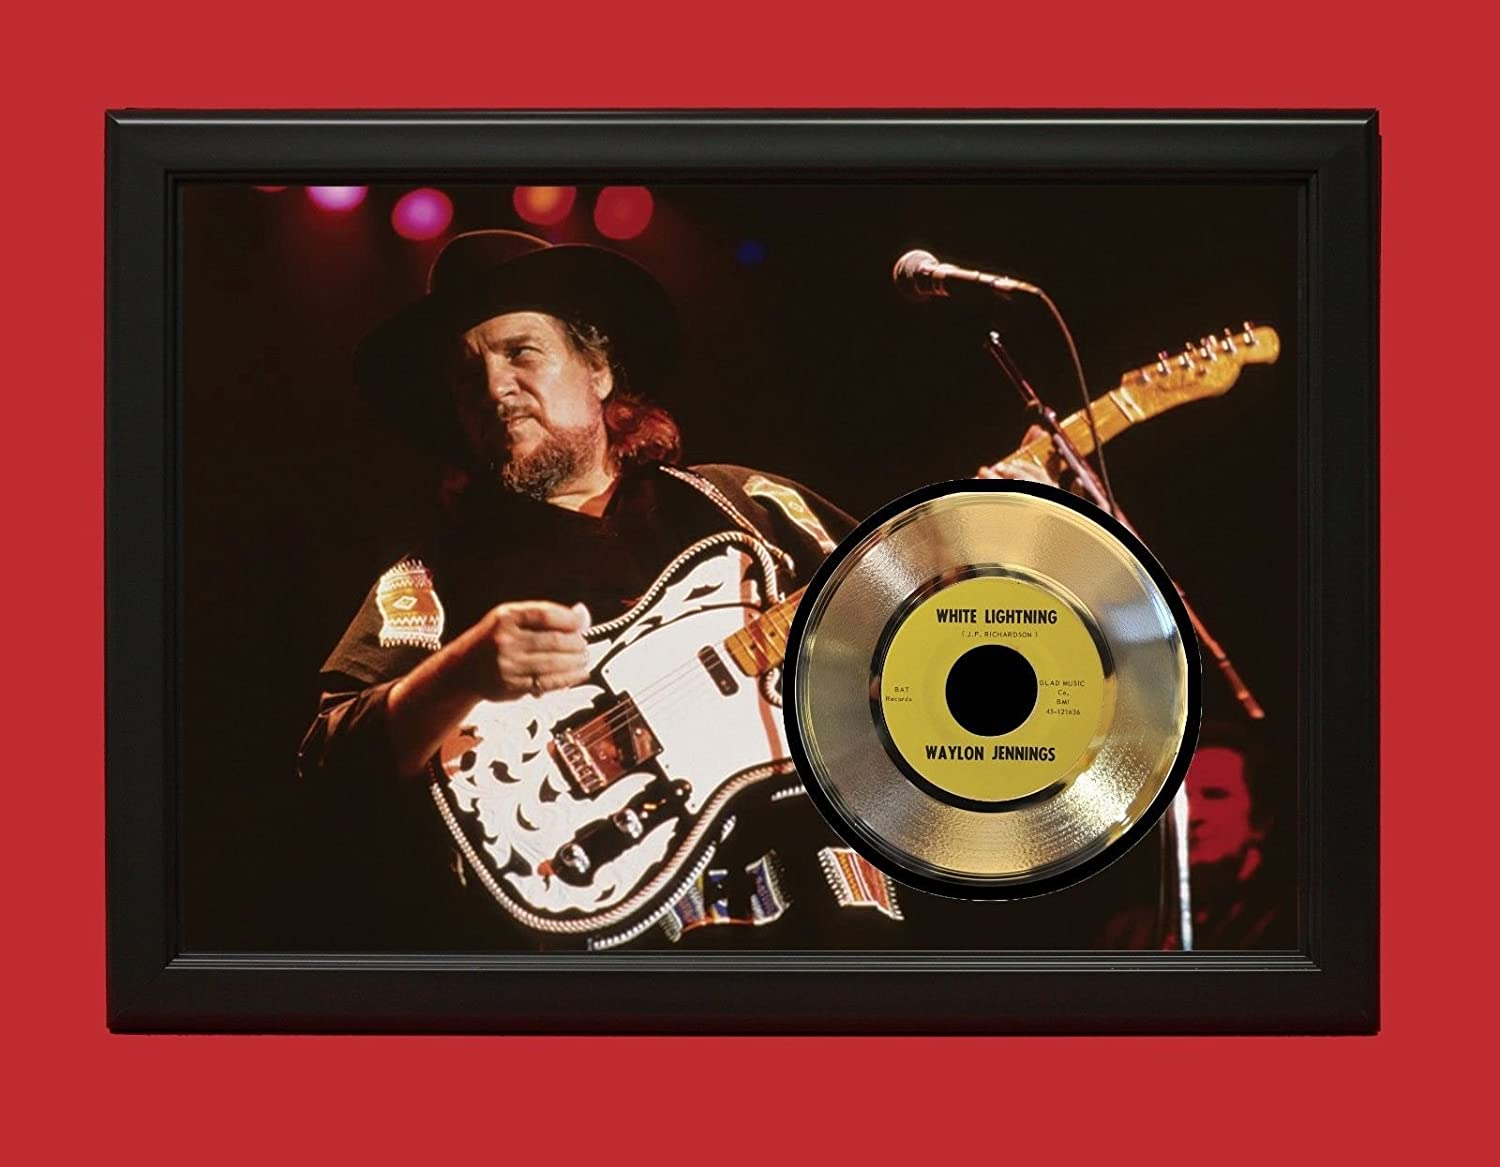 WAYLON JENNINGS POSTER ART WOOD FRAMED GOLD 45 DISPLAY FREE US SHIPPING 'C3'